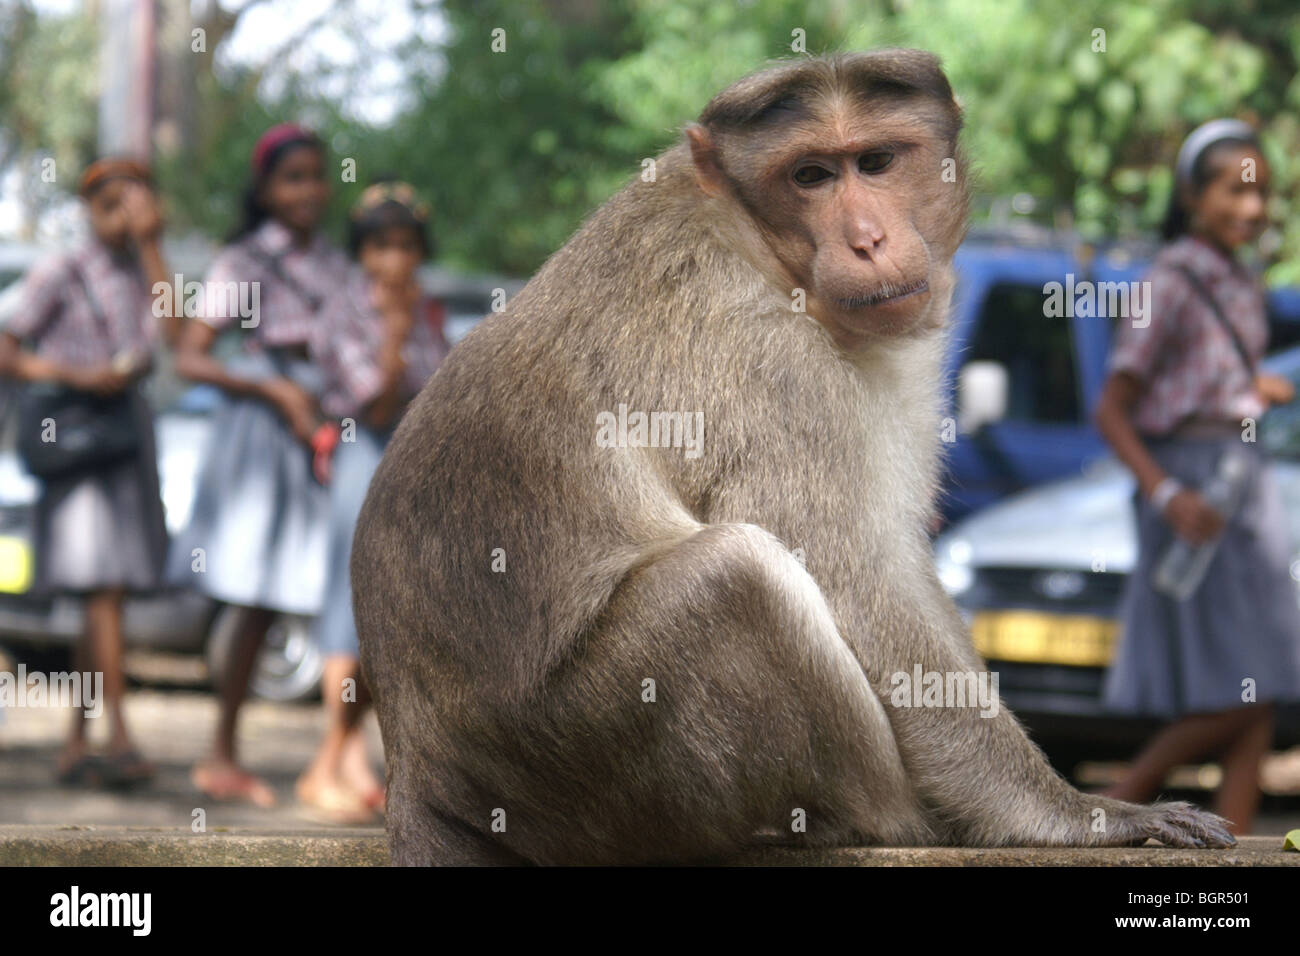 Bonnet monkey in Periyar Wildlife Sanctuary, India. - Stock Image